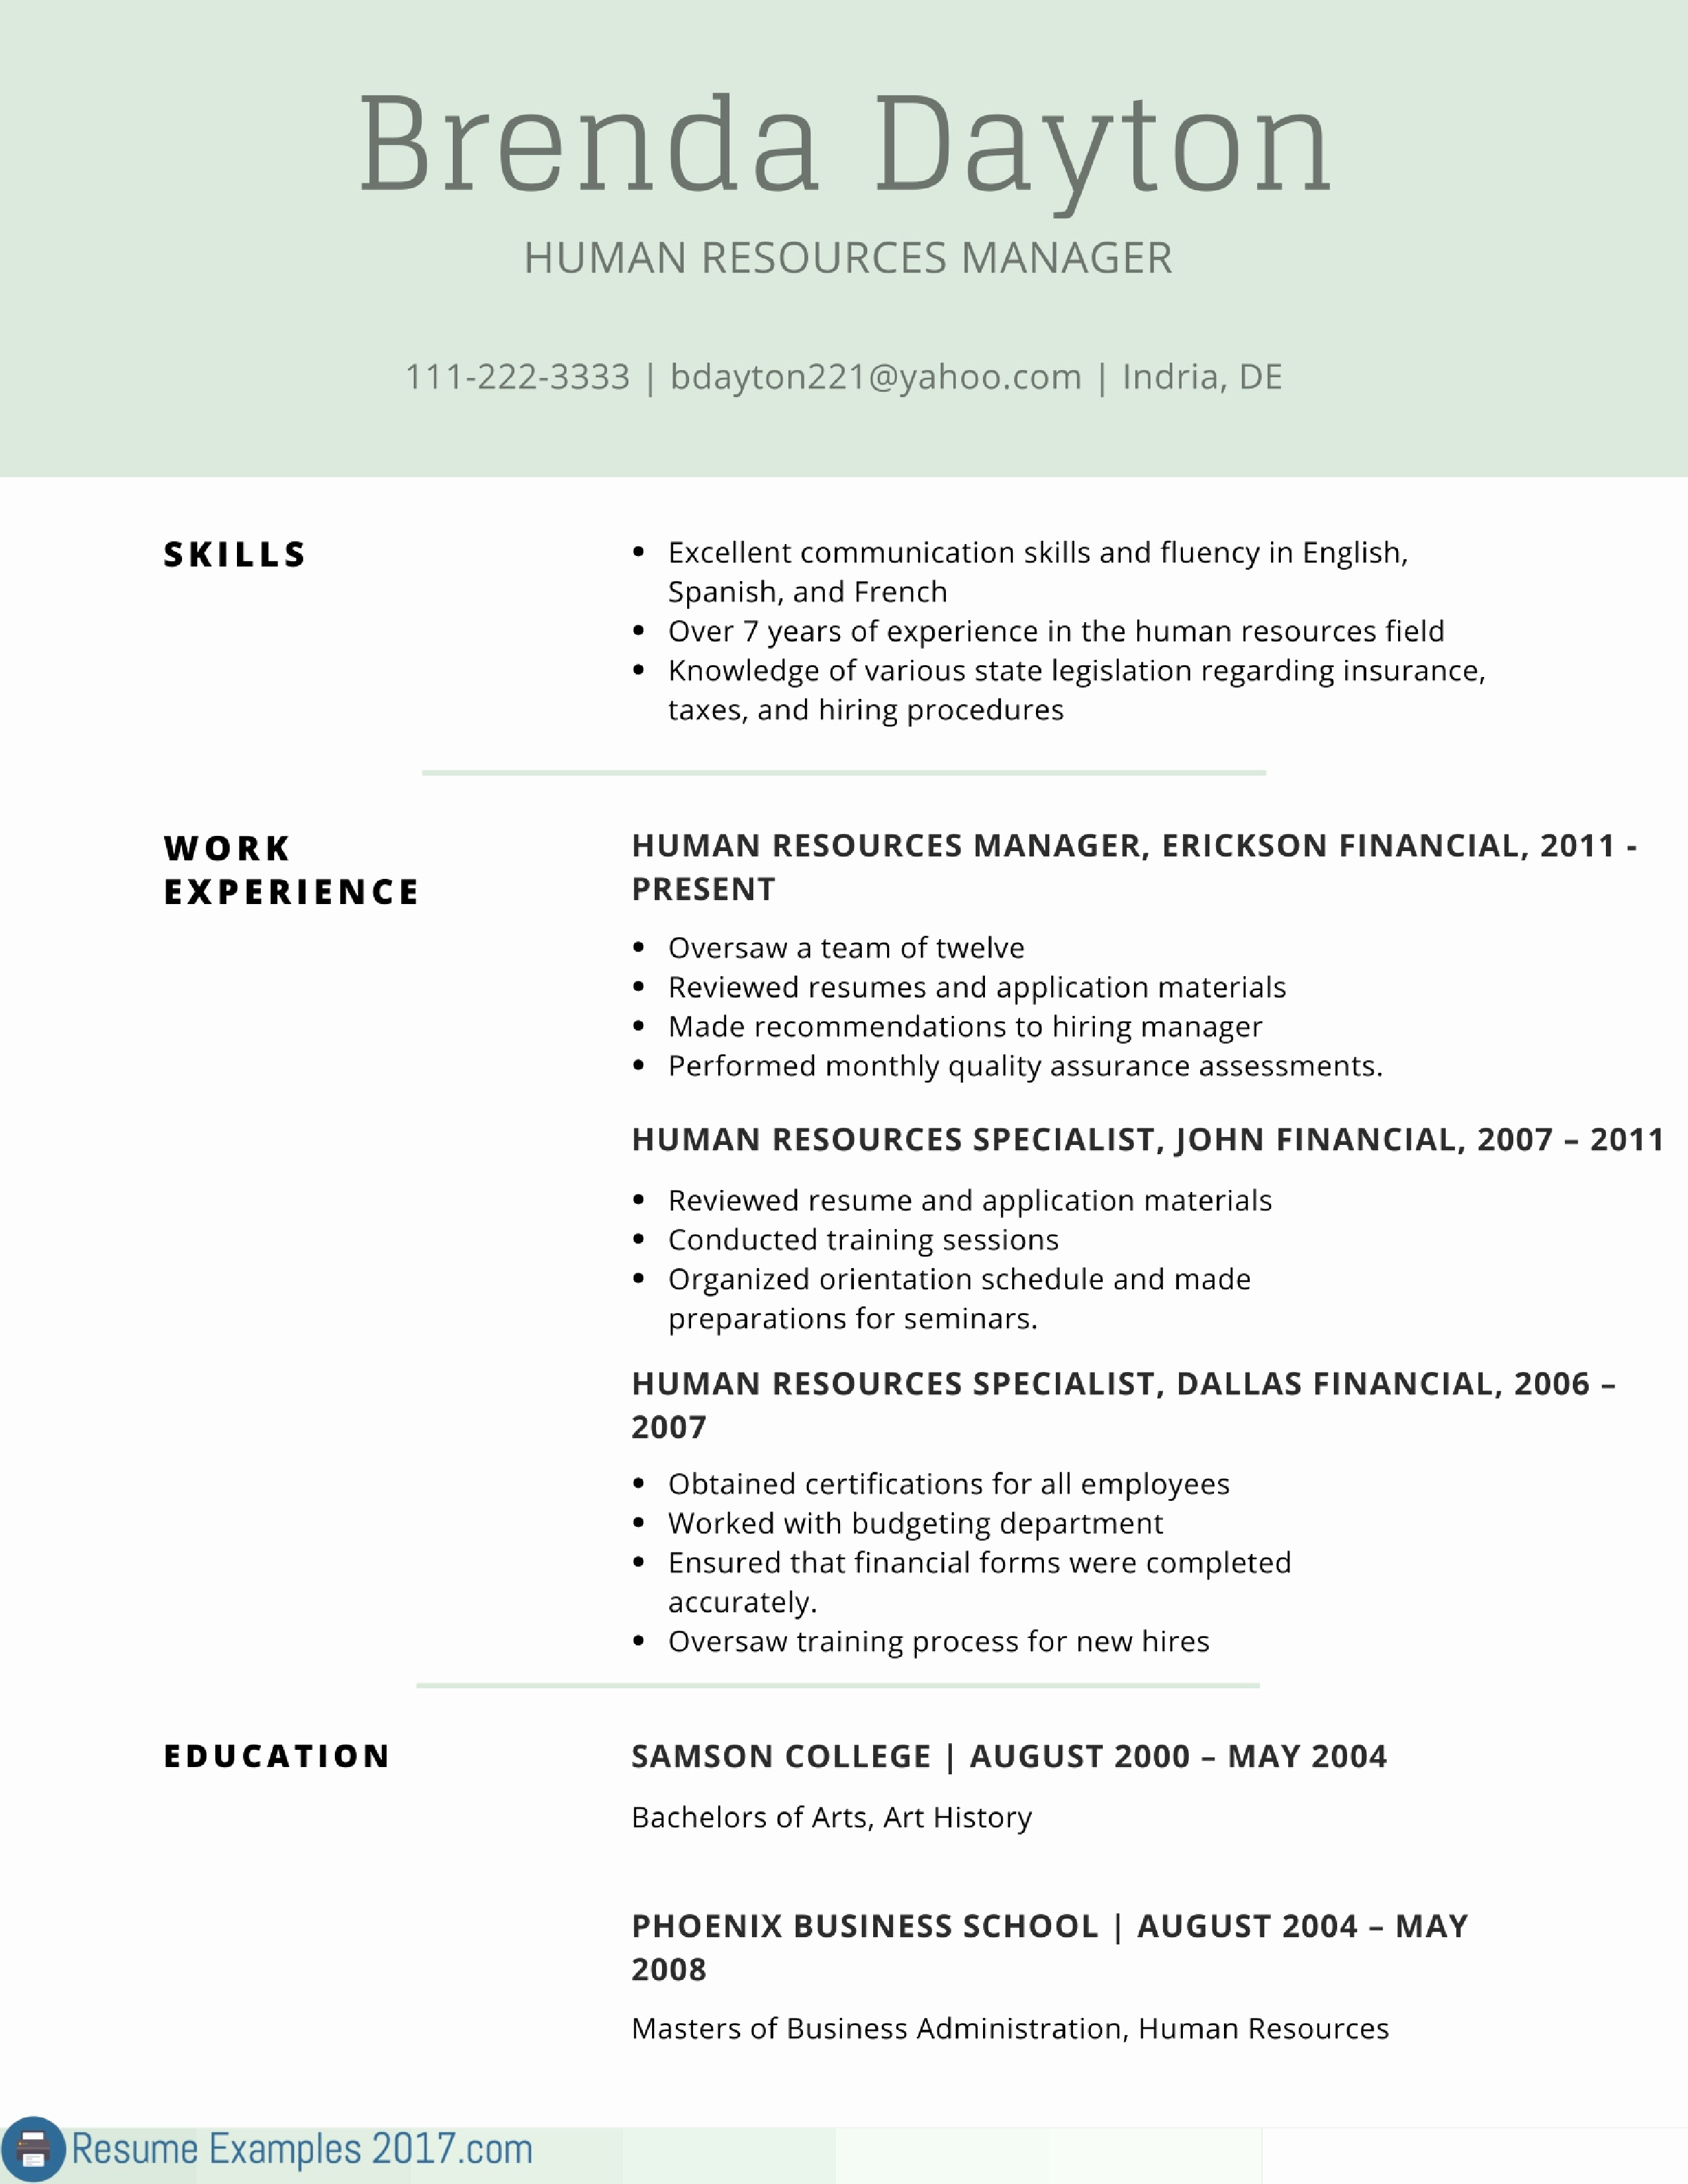 Police Officer Resume Template - New Police Ficer Resume Graphic Resume Templates Aurelianmg – Free